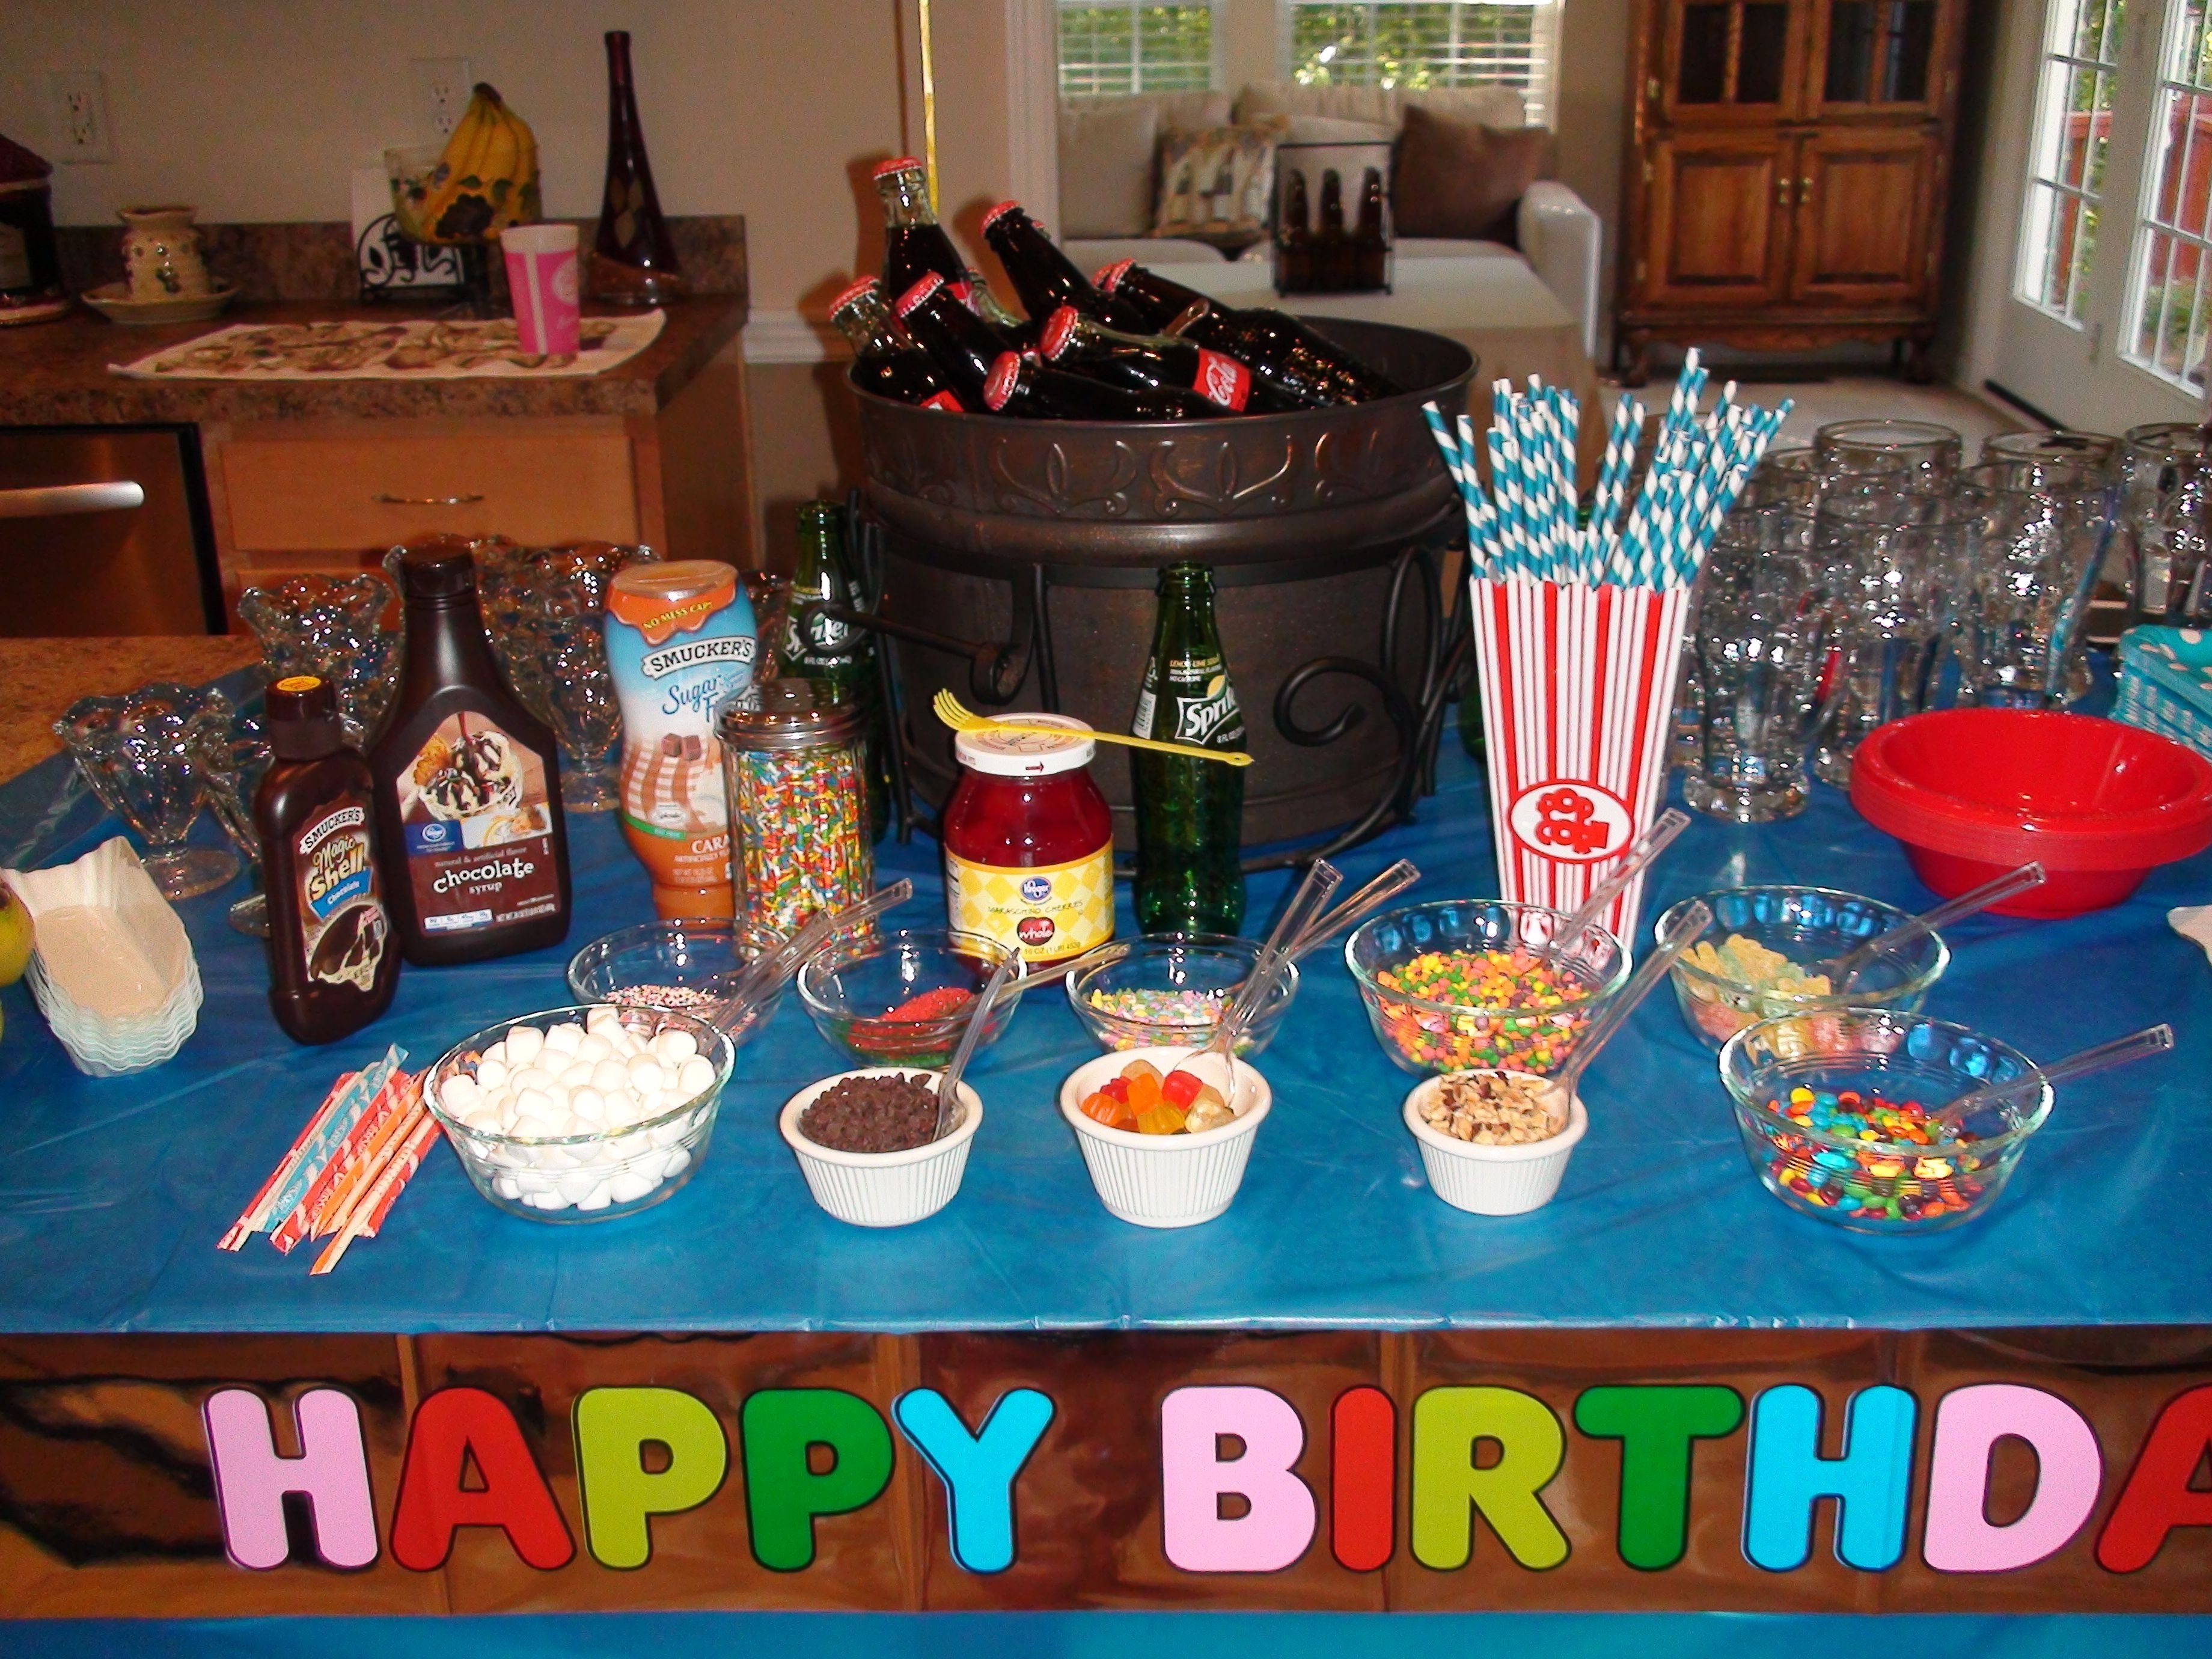 10 Nice 12 Year Old Birthday Party Ideas For Boys 12 year old party root beer floats banana splits ice cream with 13